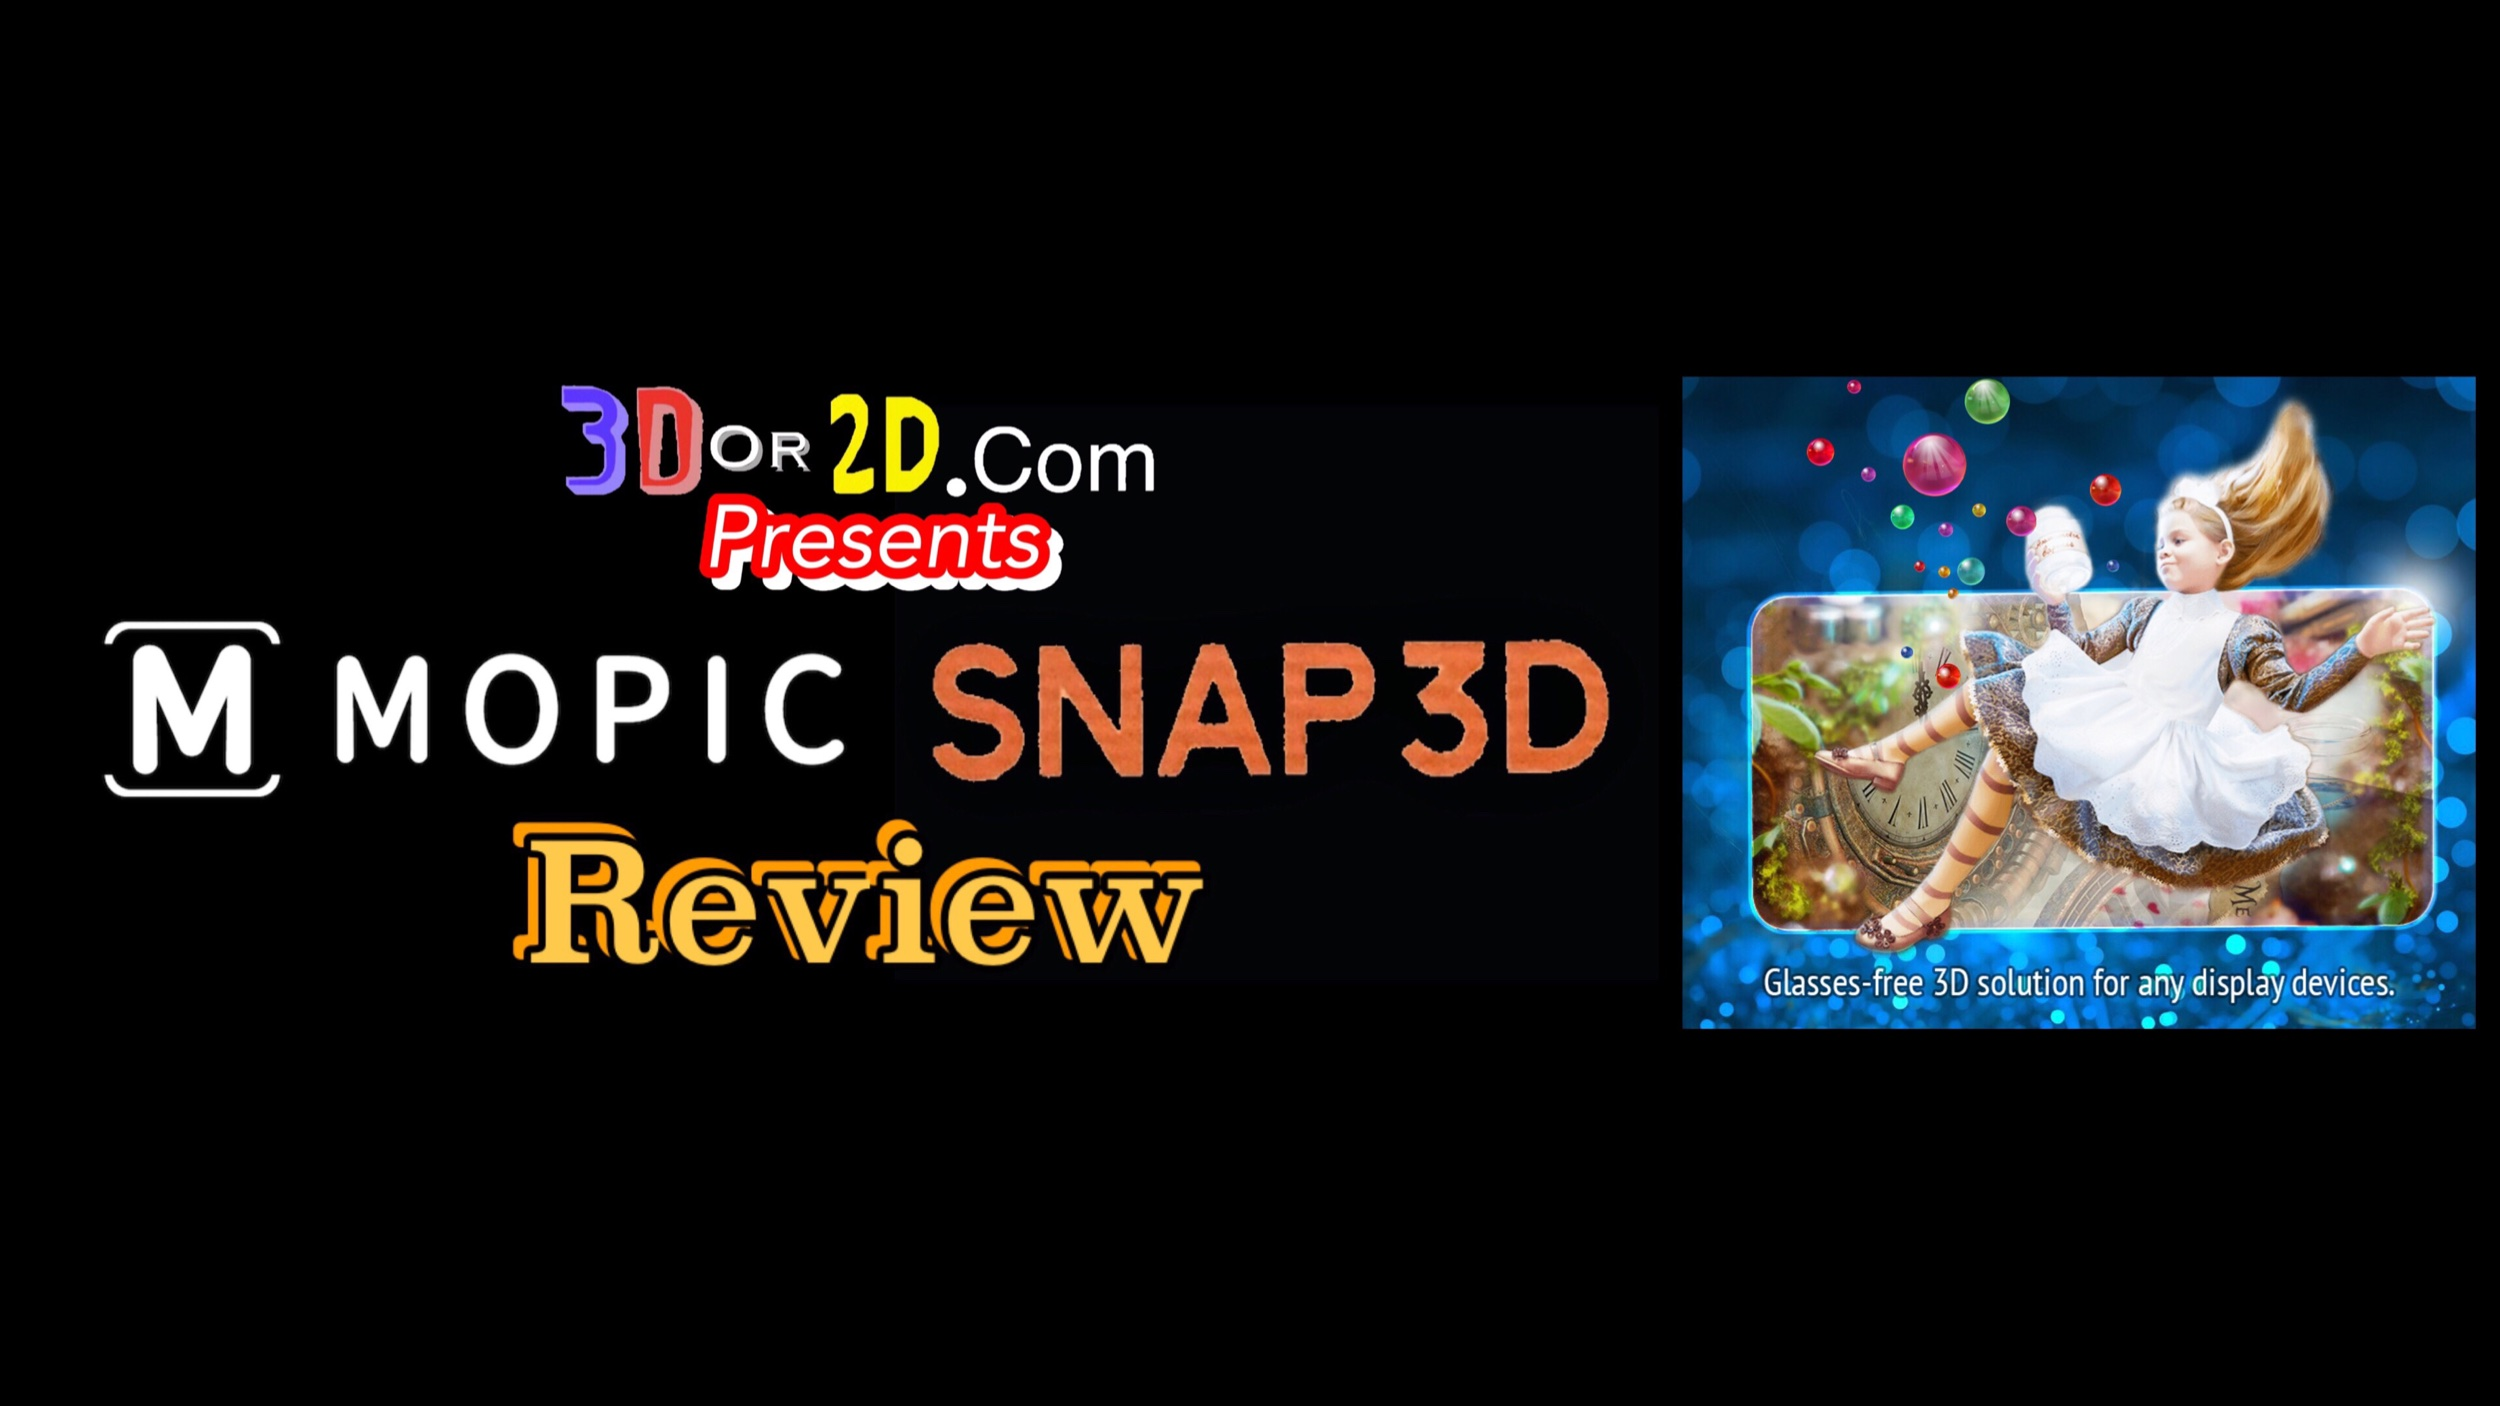 Mopic-snap-3D-review.jpeg